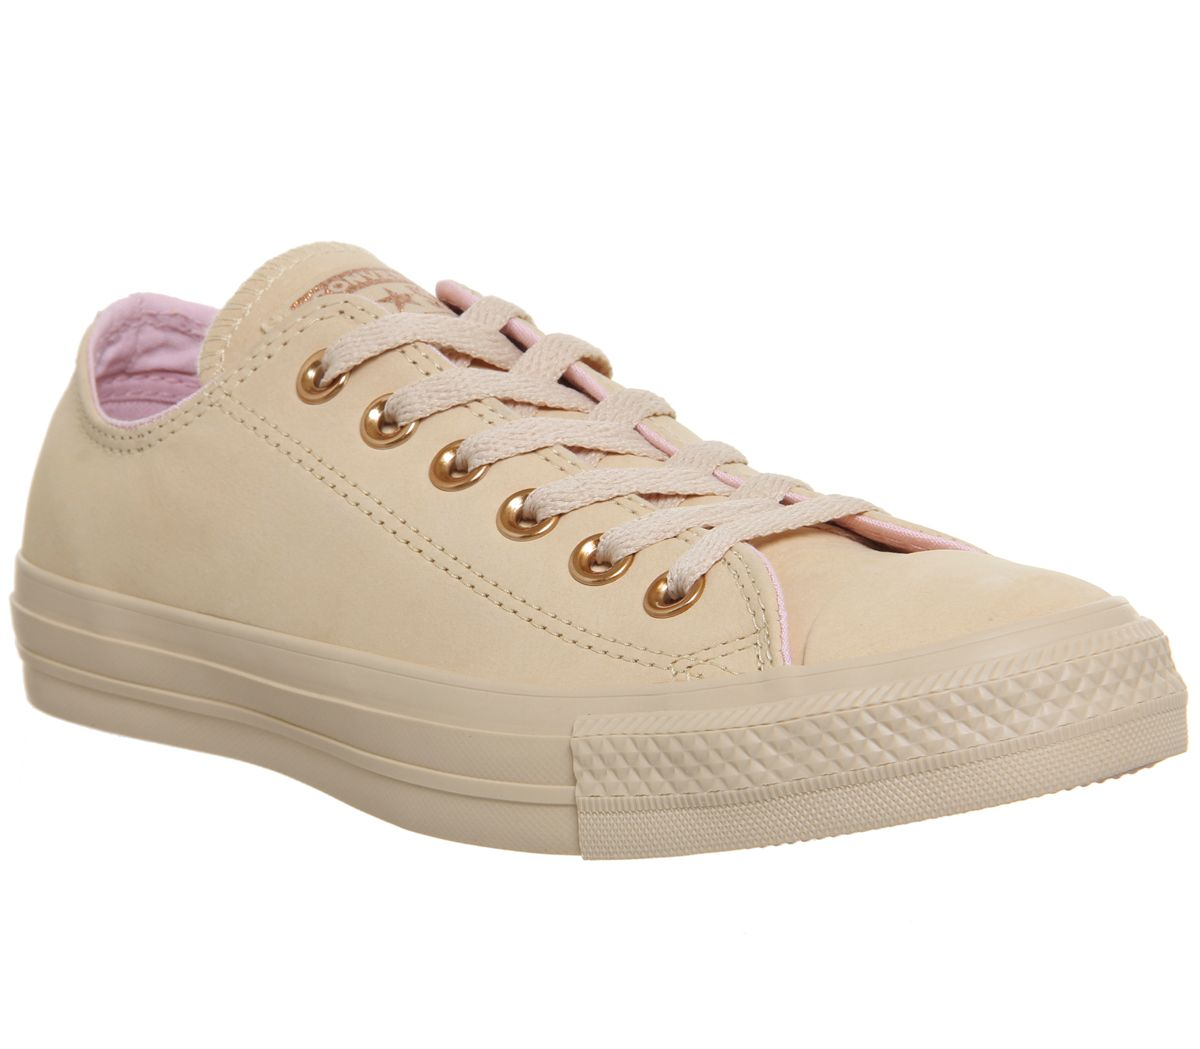 Converse All Star Low Leather Trainers, Ginger